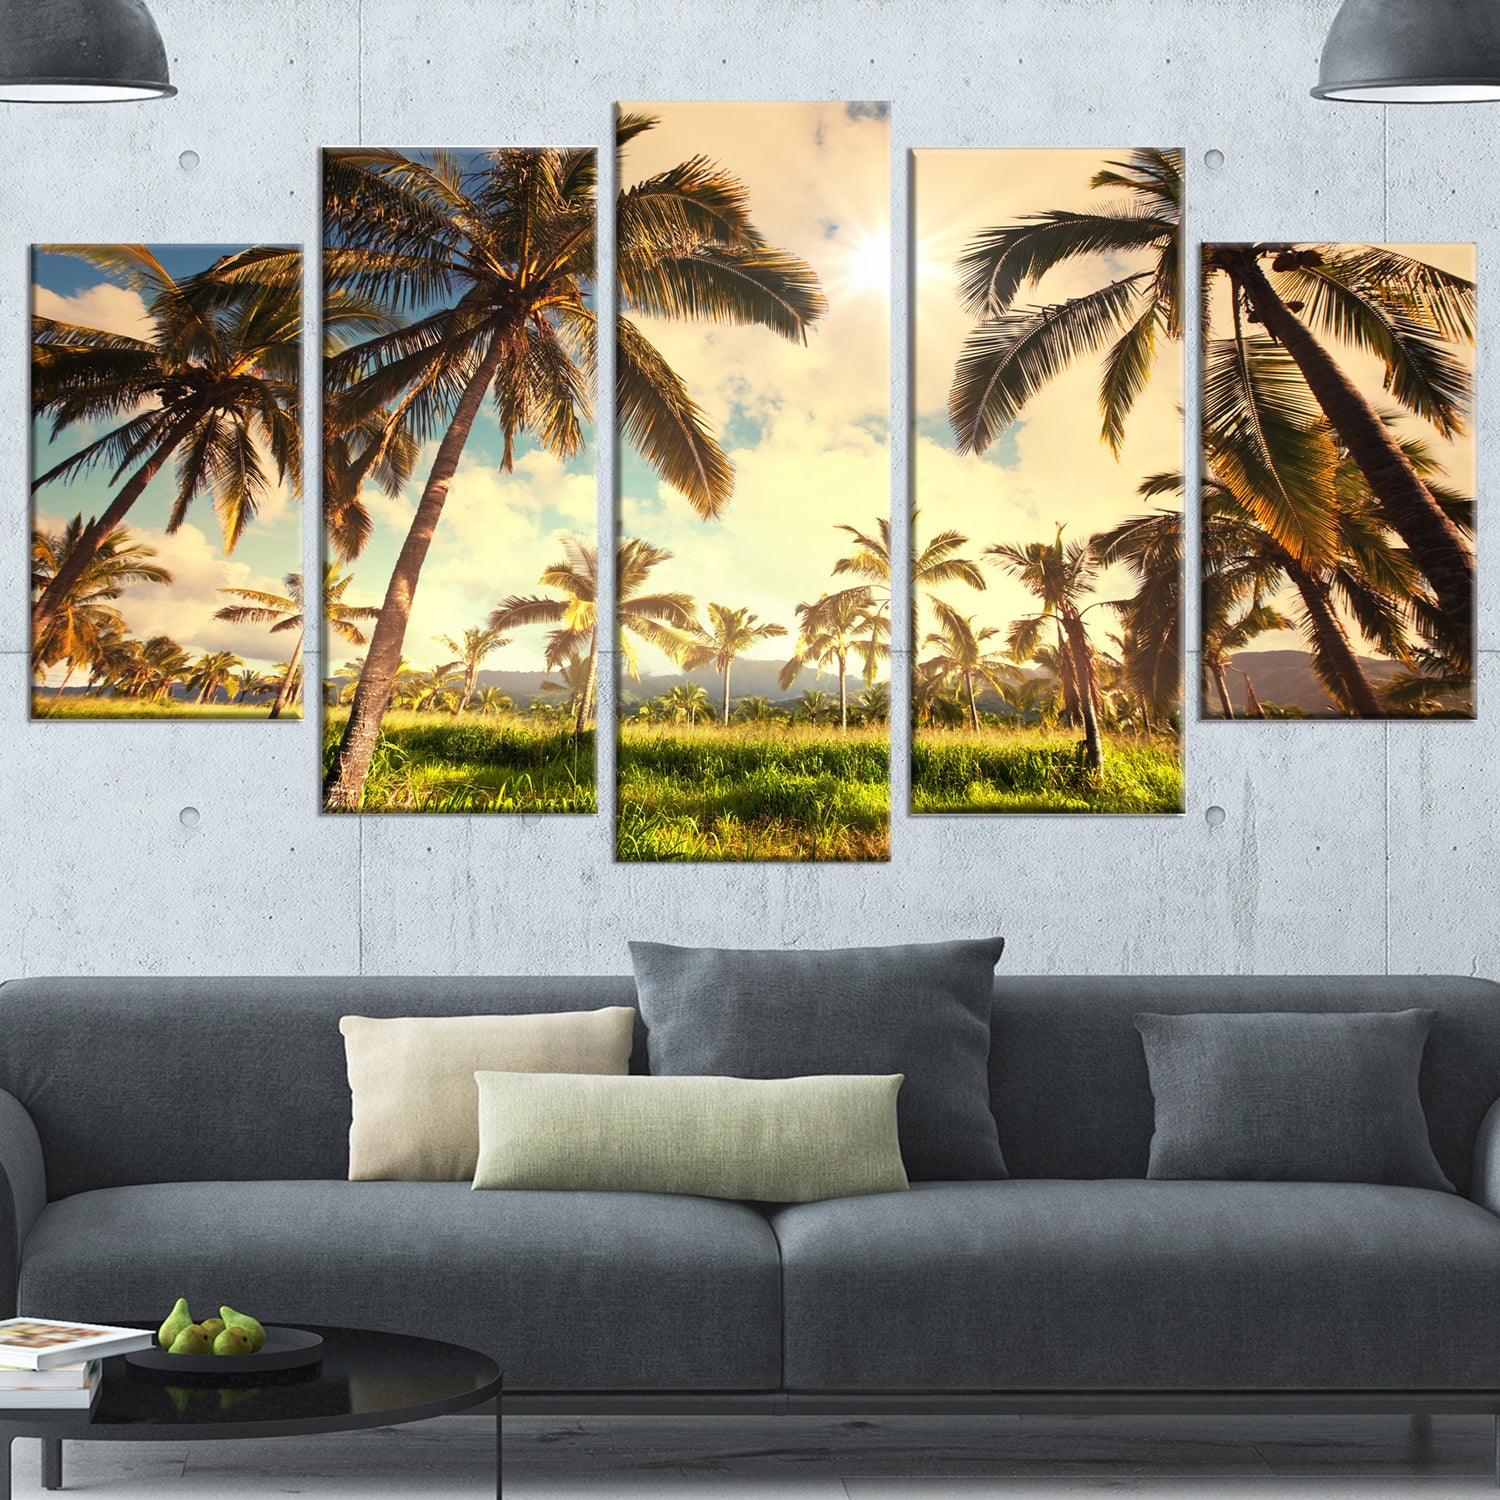 Funky Hawaiian Wall Art Motif - All About Wallart - adelgazare.info